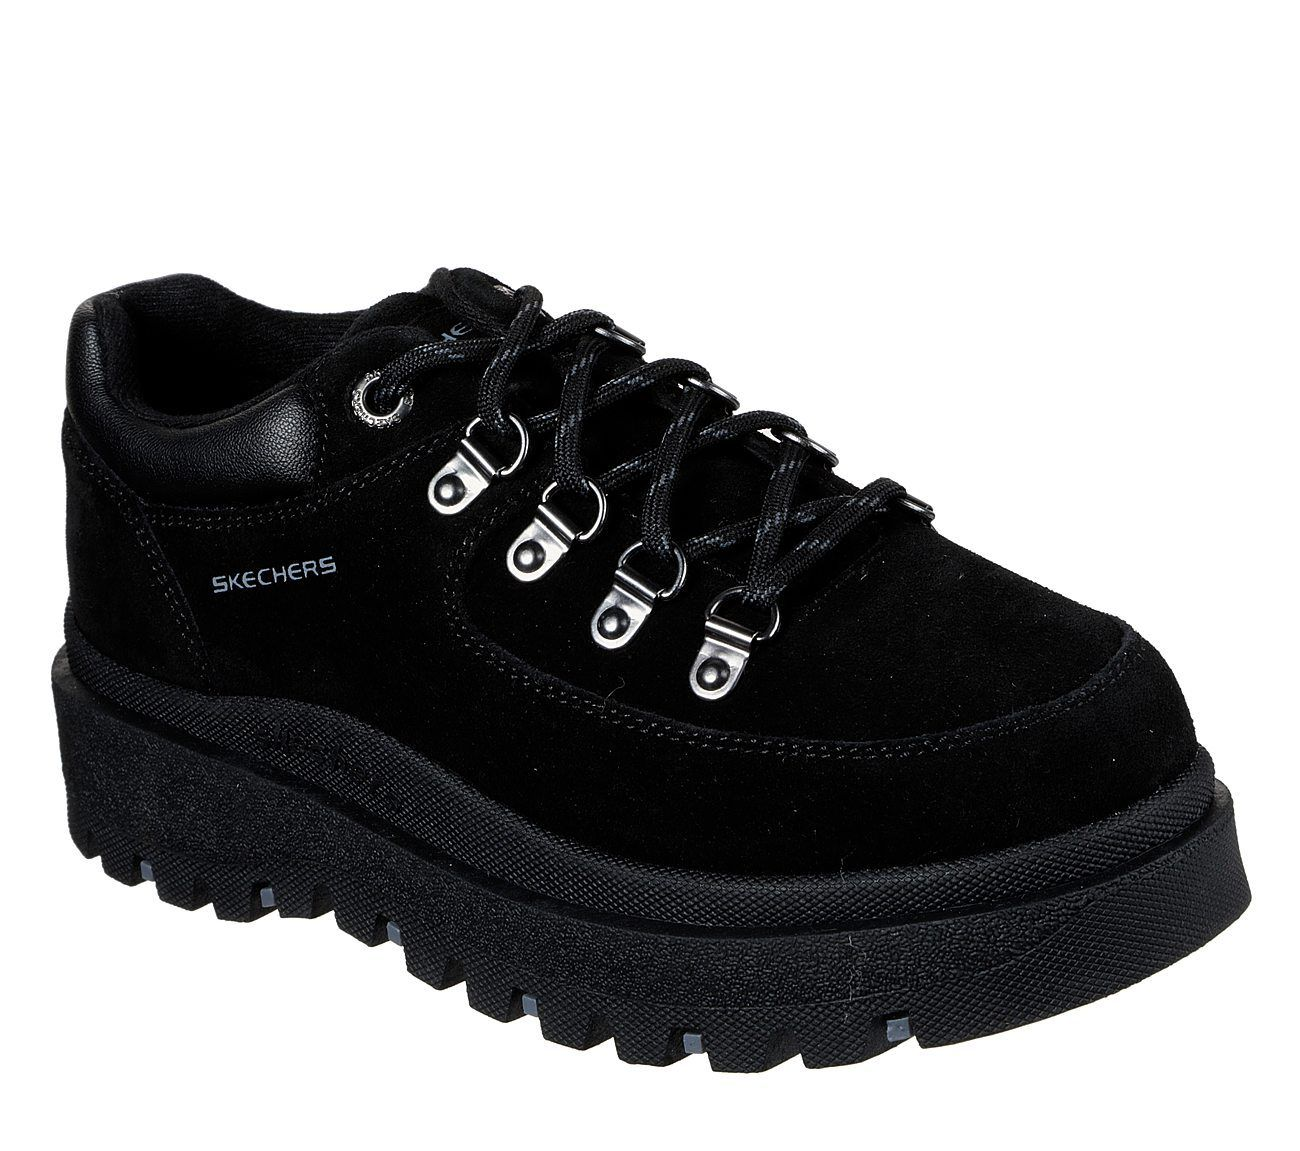 Skechers Shindigs Stompin' Trainers | Skechers, Lace up